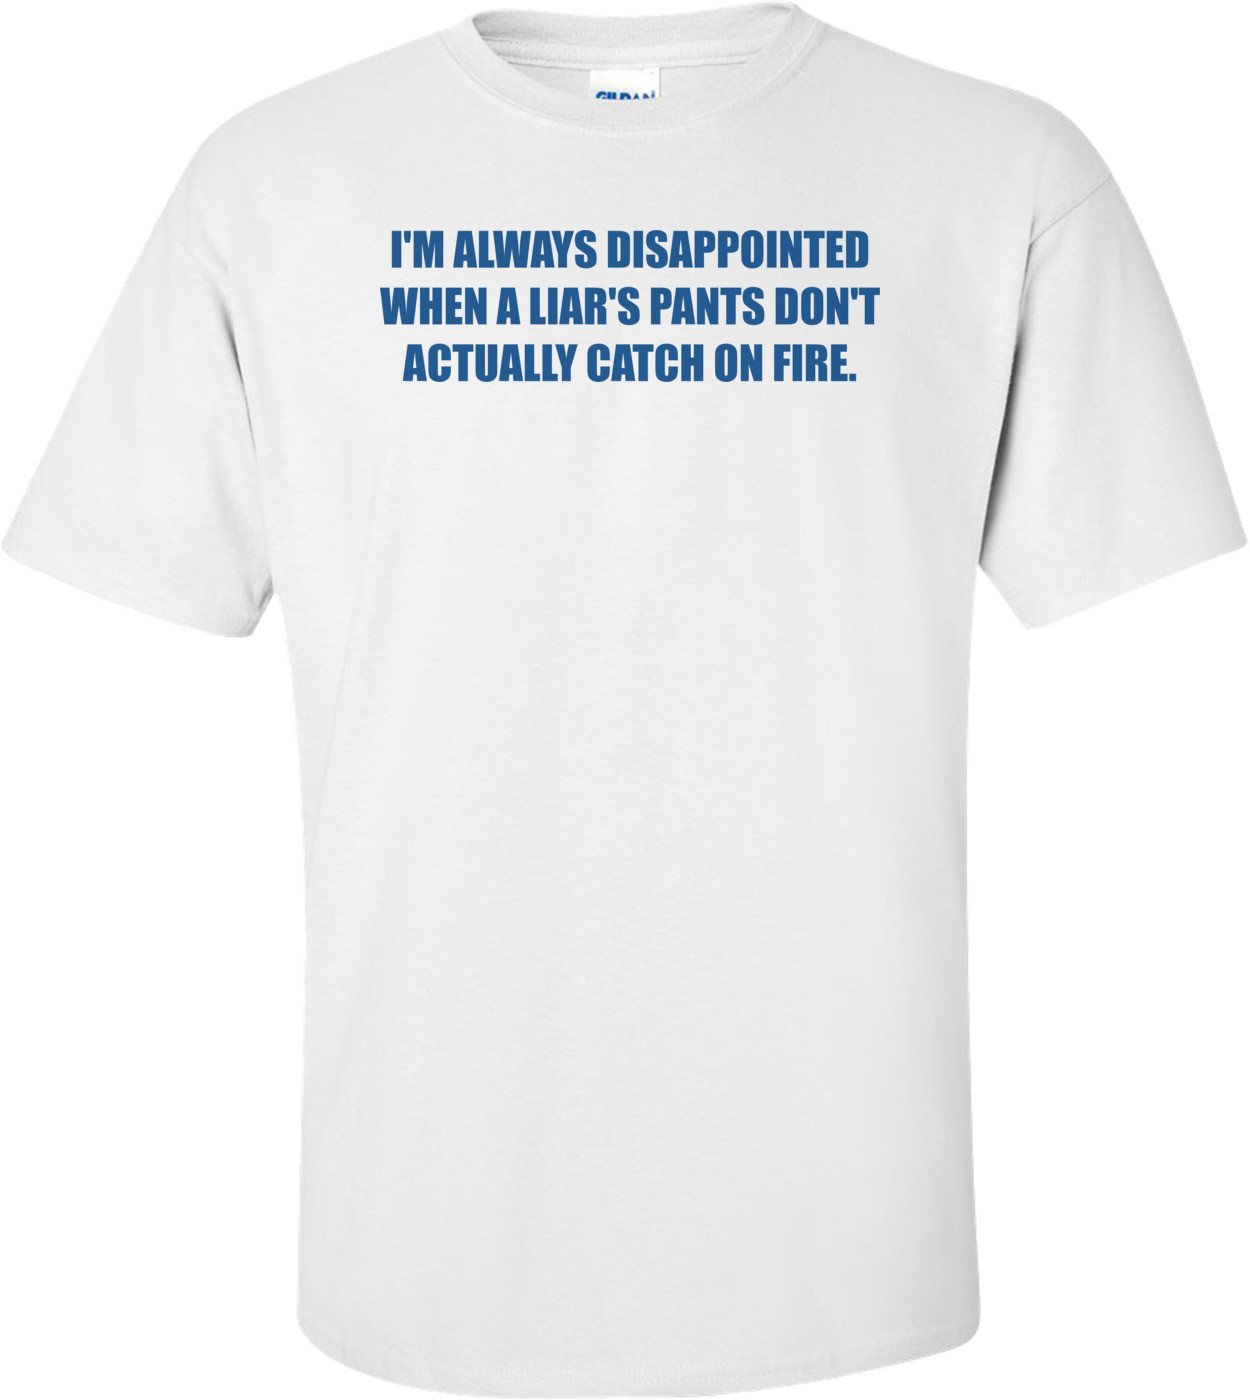 I'M ALWAYS DISAPPOINTED WHEN A LIAR'S PANTS DON'T ACTUALLY CATCH ON FIRE. Shirt